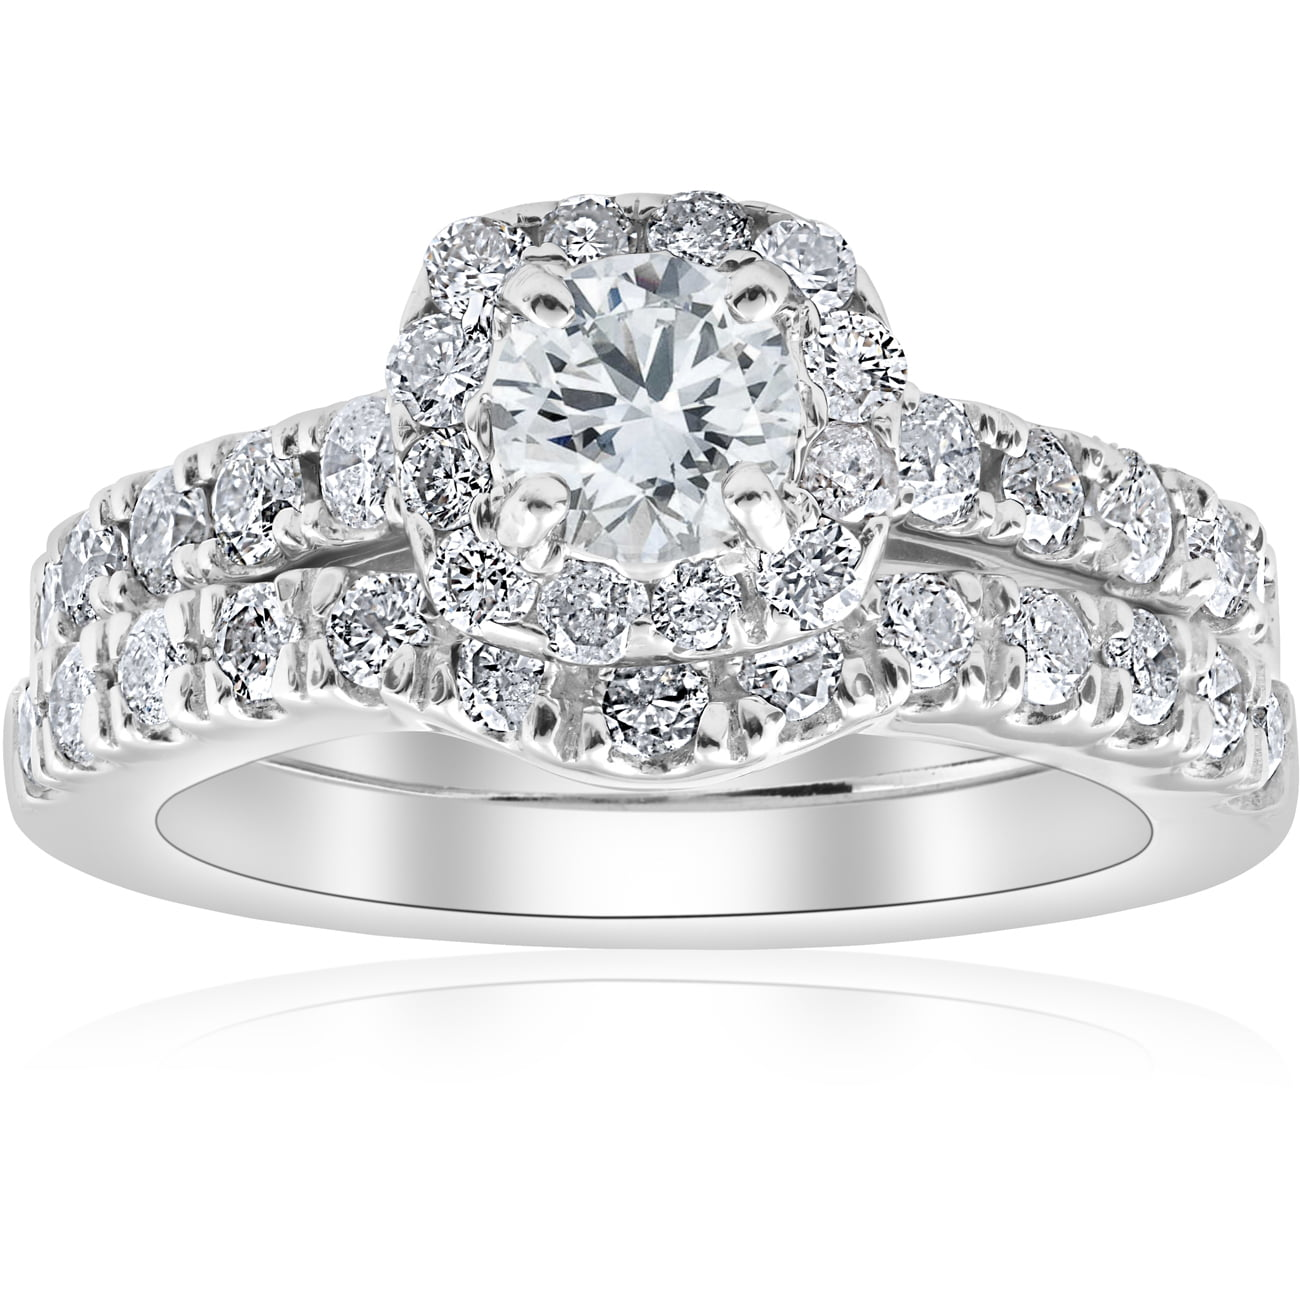 1 1 4ct Cushion Halo Diamond Engagement Matching Wedding Ring Set 14K White Gold by Pompeii3